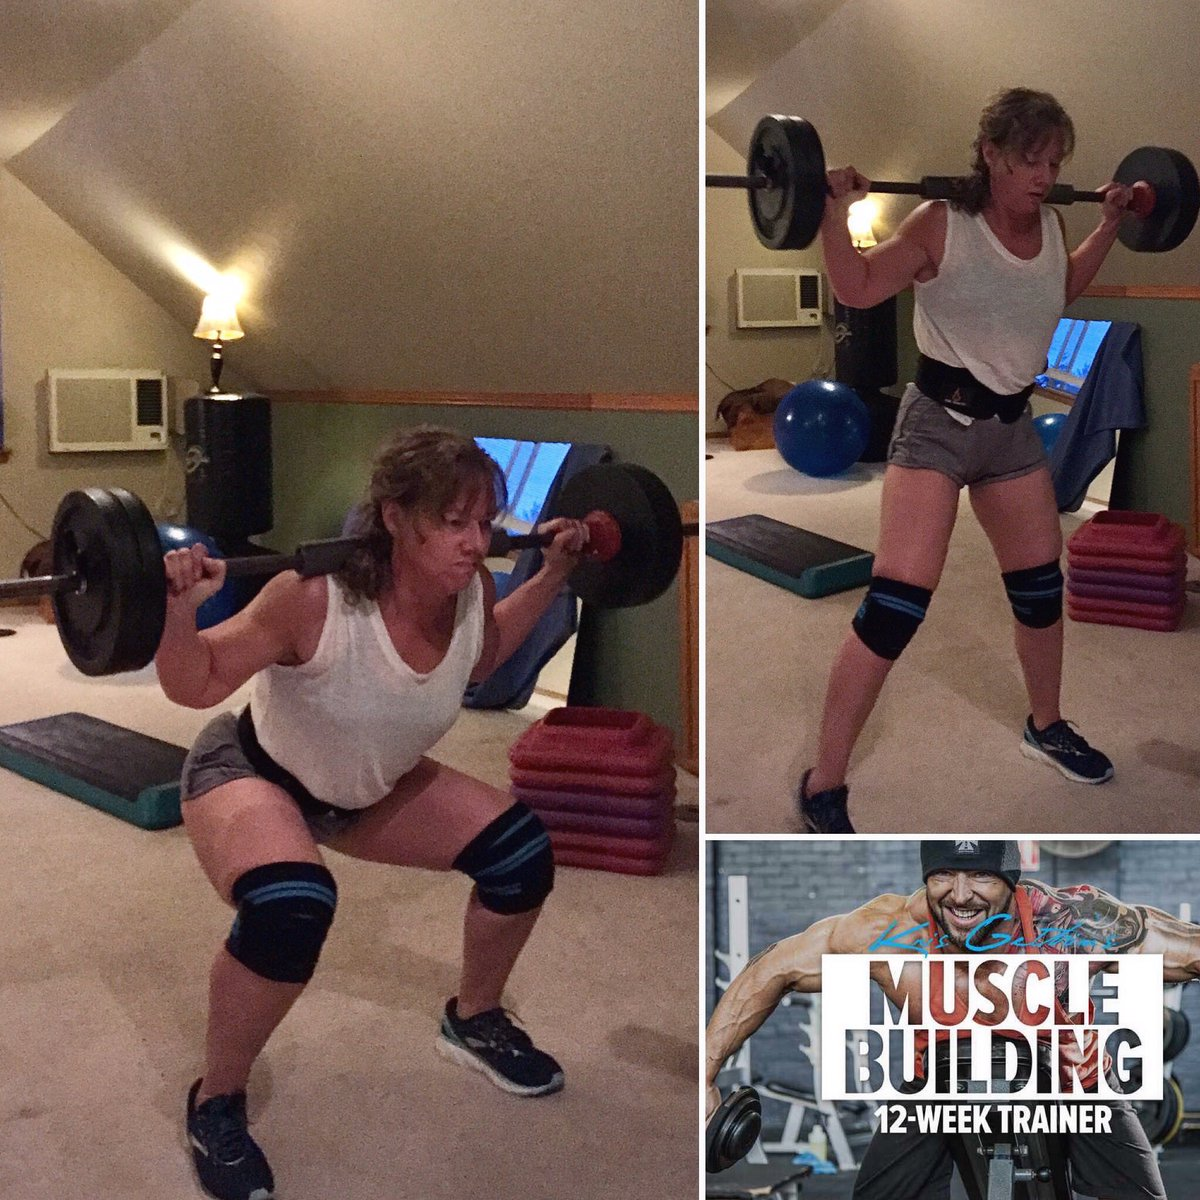 """I am realizing that I forgot to factor in the 20 lb bar when loading up for squats, thinking I was squatting 100 lbs & actually doing 120, wondering,""""Why am I so weak today?"""" . . Duh.   Link to my program.  https://goto.bodybuilding.com/LGoVL #squats #weightlifting #gymlife #fitnesspic.twitter.com/3VZRGLO9z3"""